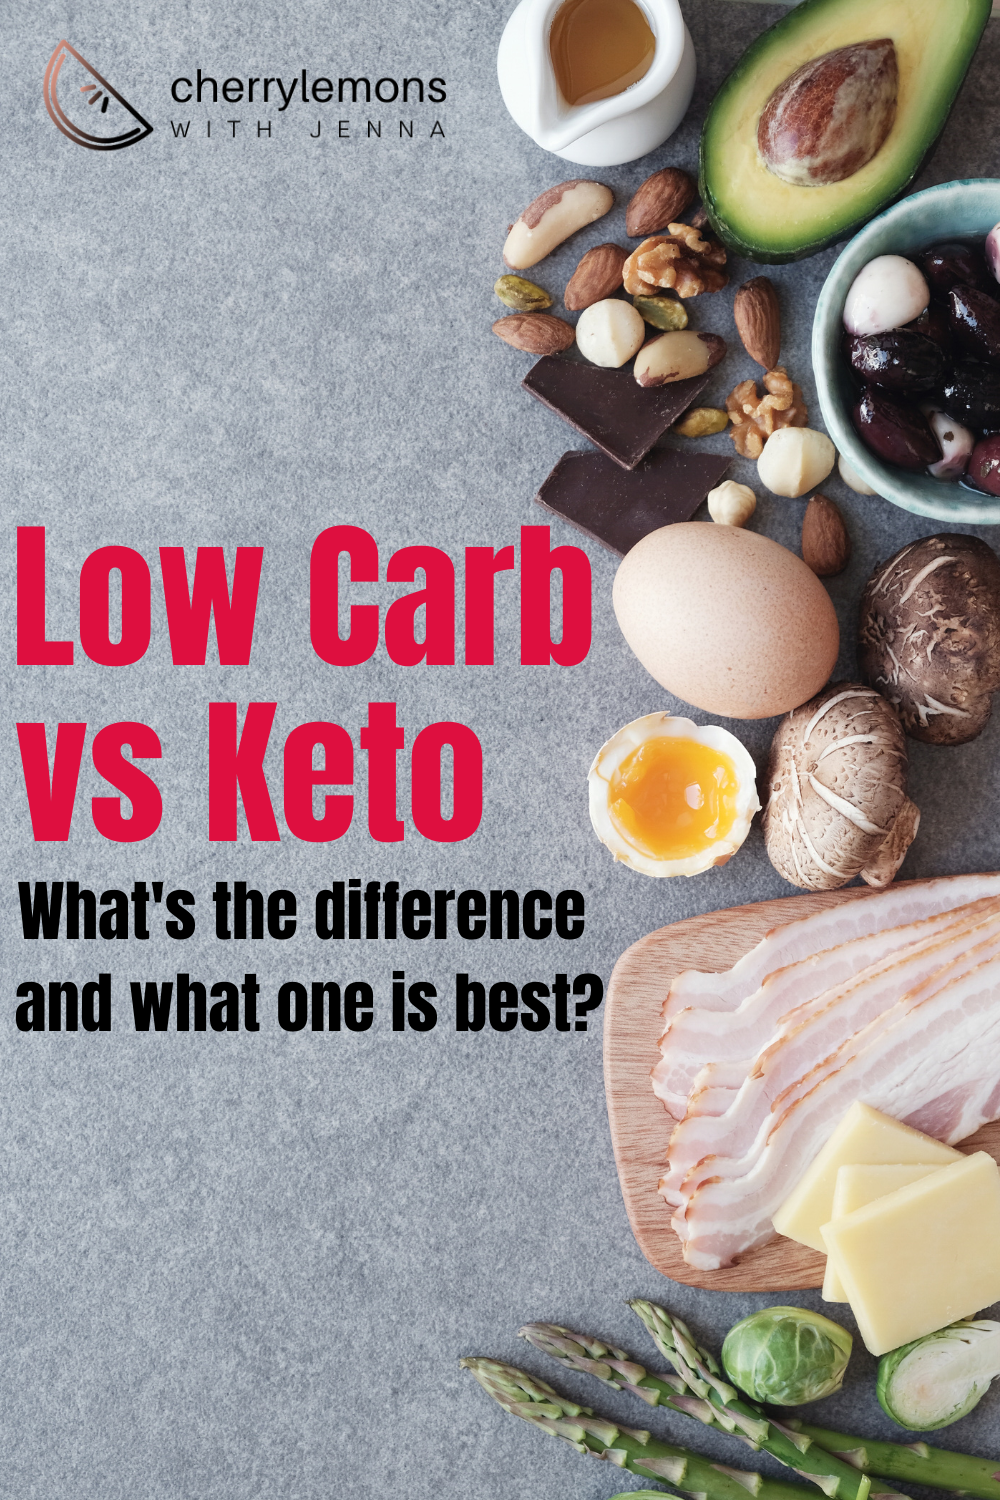 Low Carb vs Keto - What's the difference